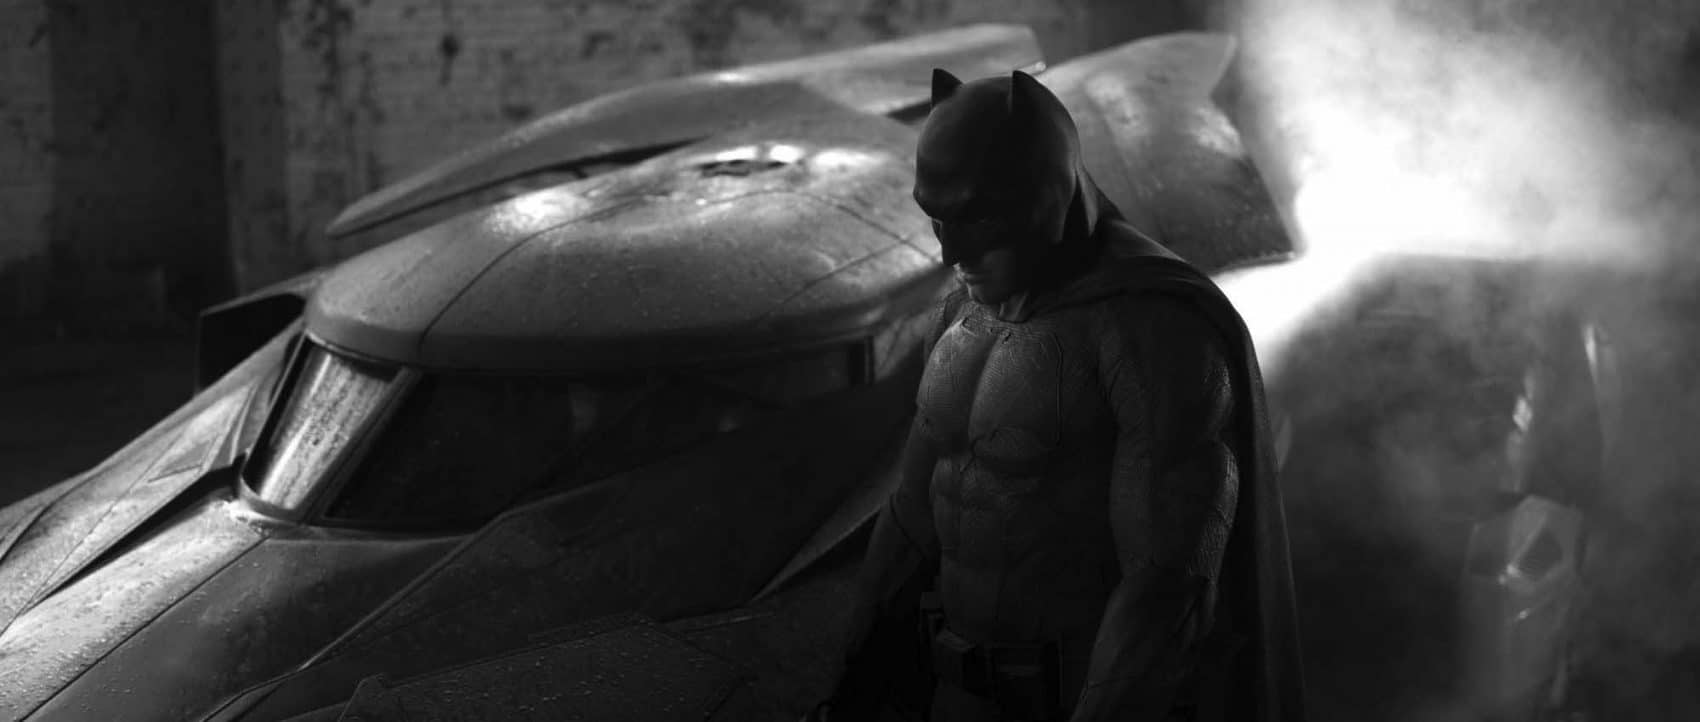 Batman v Superman : L'Aube de la Justice – Critique du film